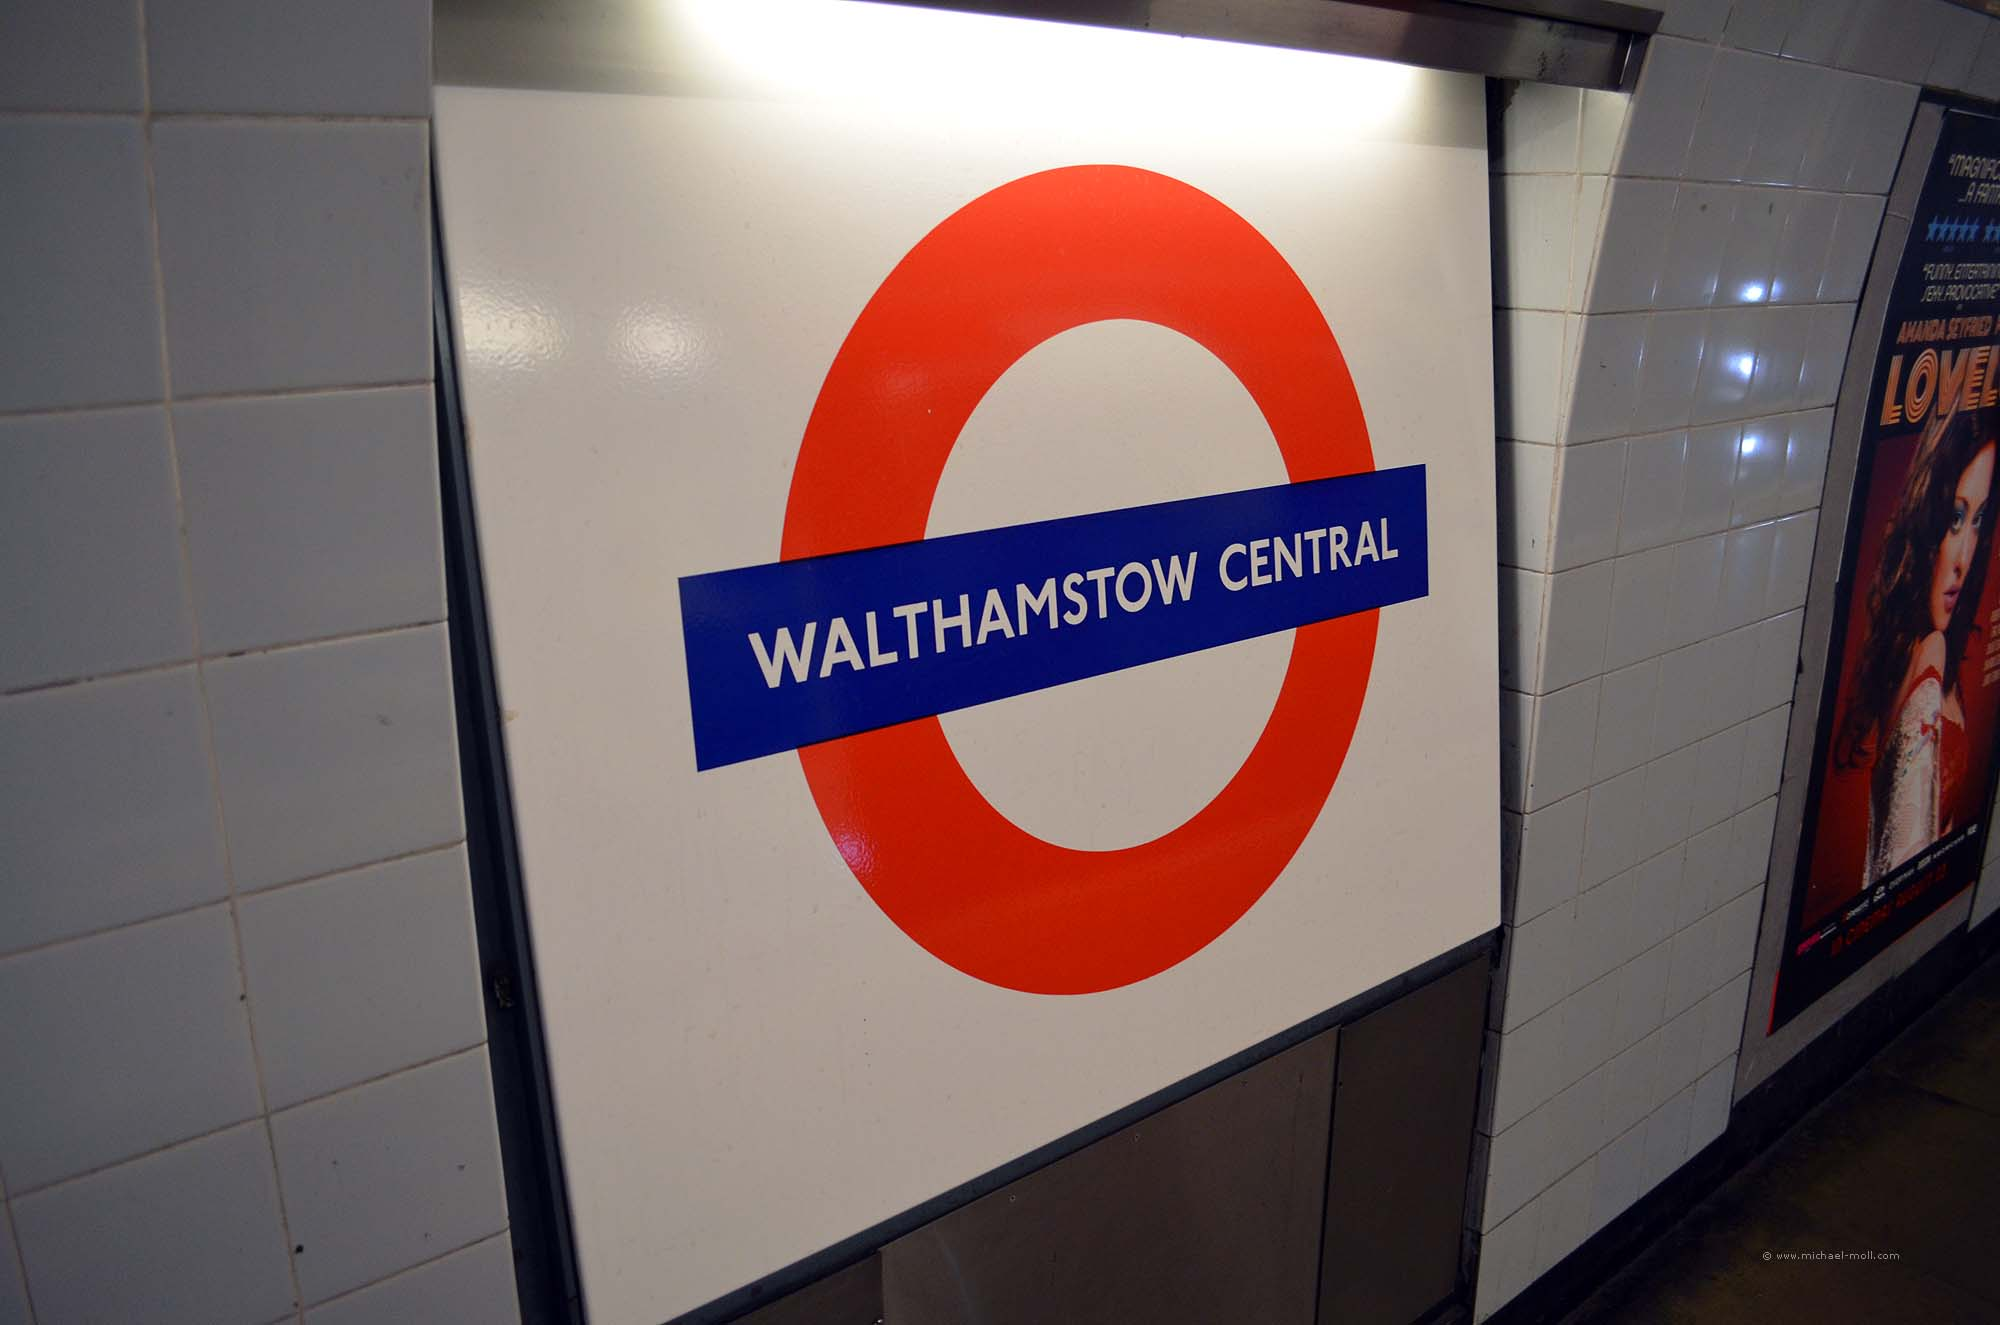 Walthamstow Central